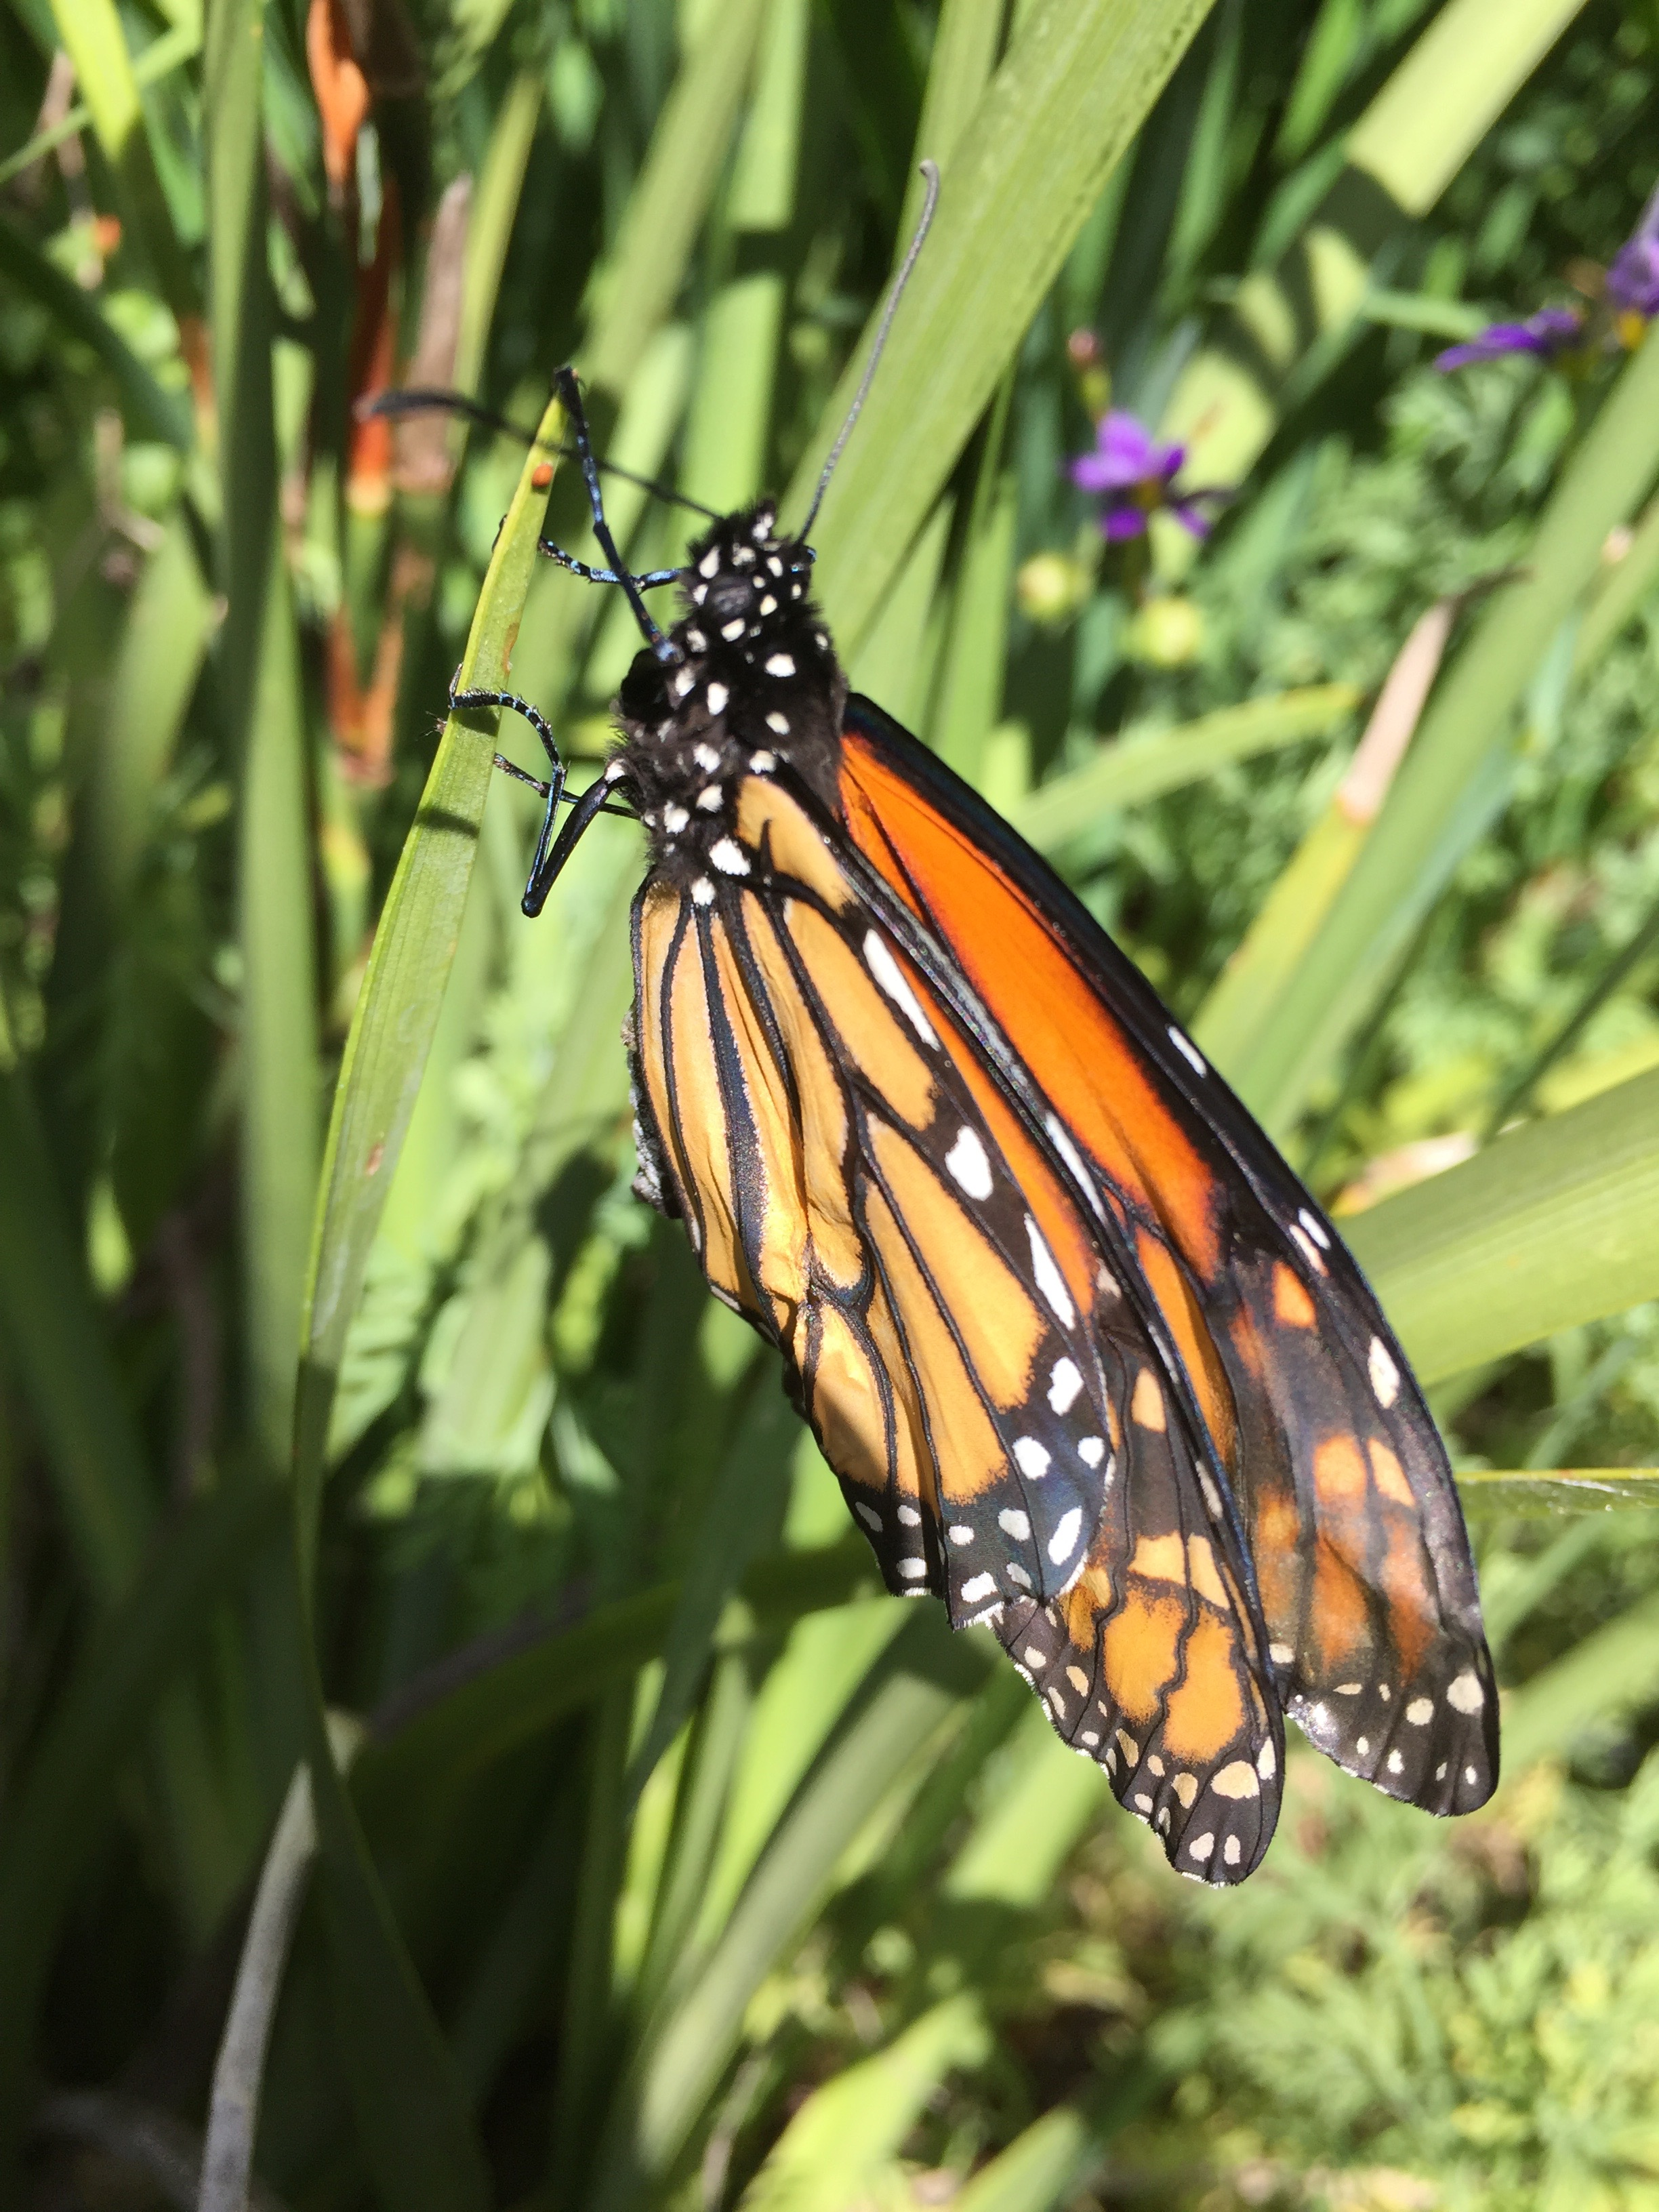 This monarch butterfly emerged from its chrysalis attached to a plant in my backyard, but it had a deformed wing and was never able to fly.